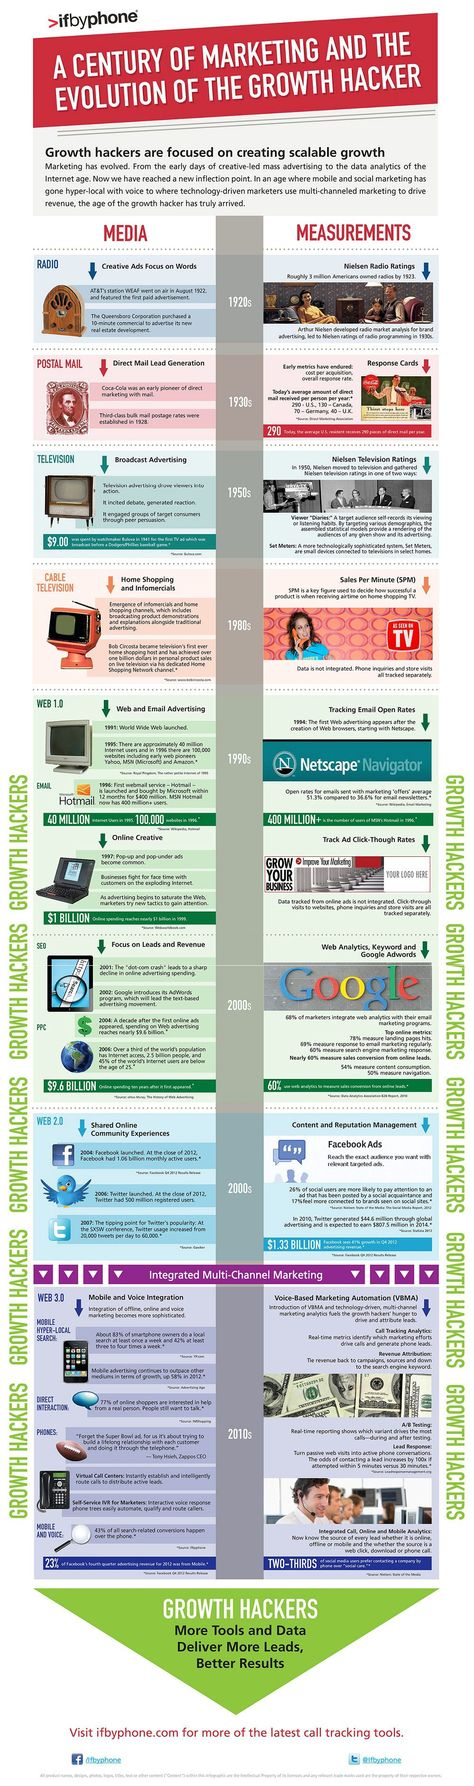 A Century of Marketing Media and Measurement: The Evolution of the 'Growth Hacker' [Infographic]